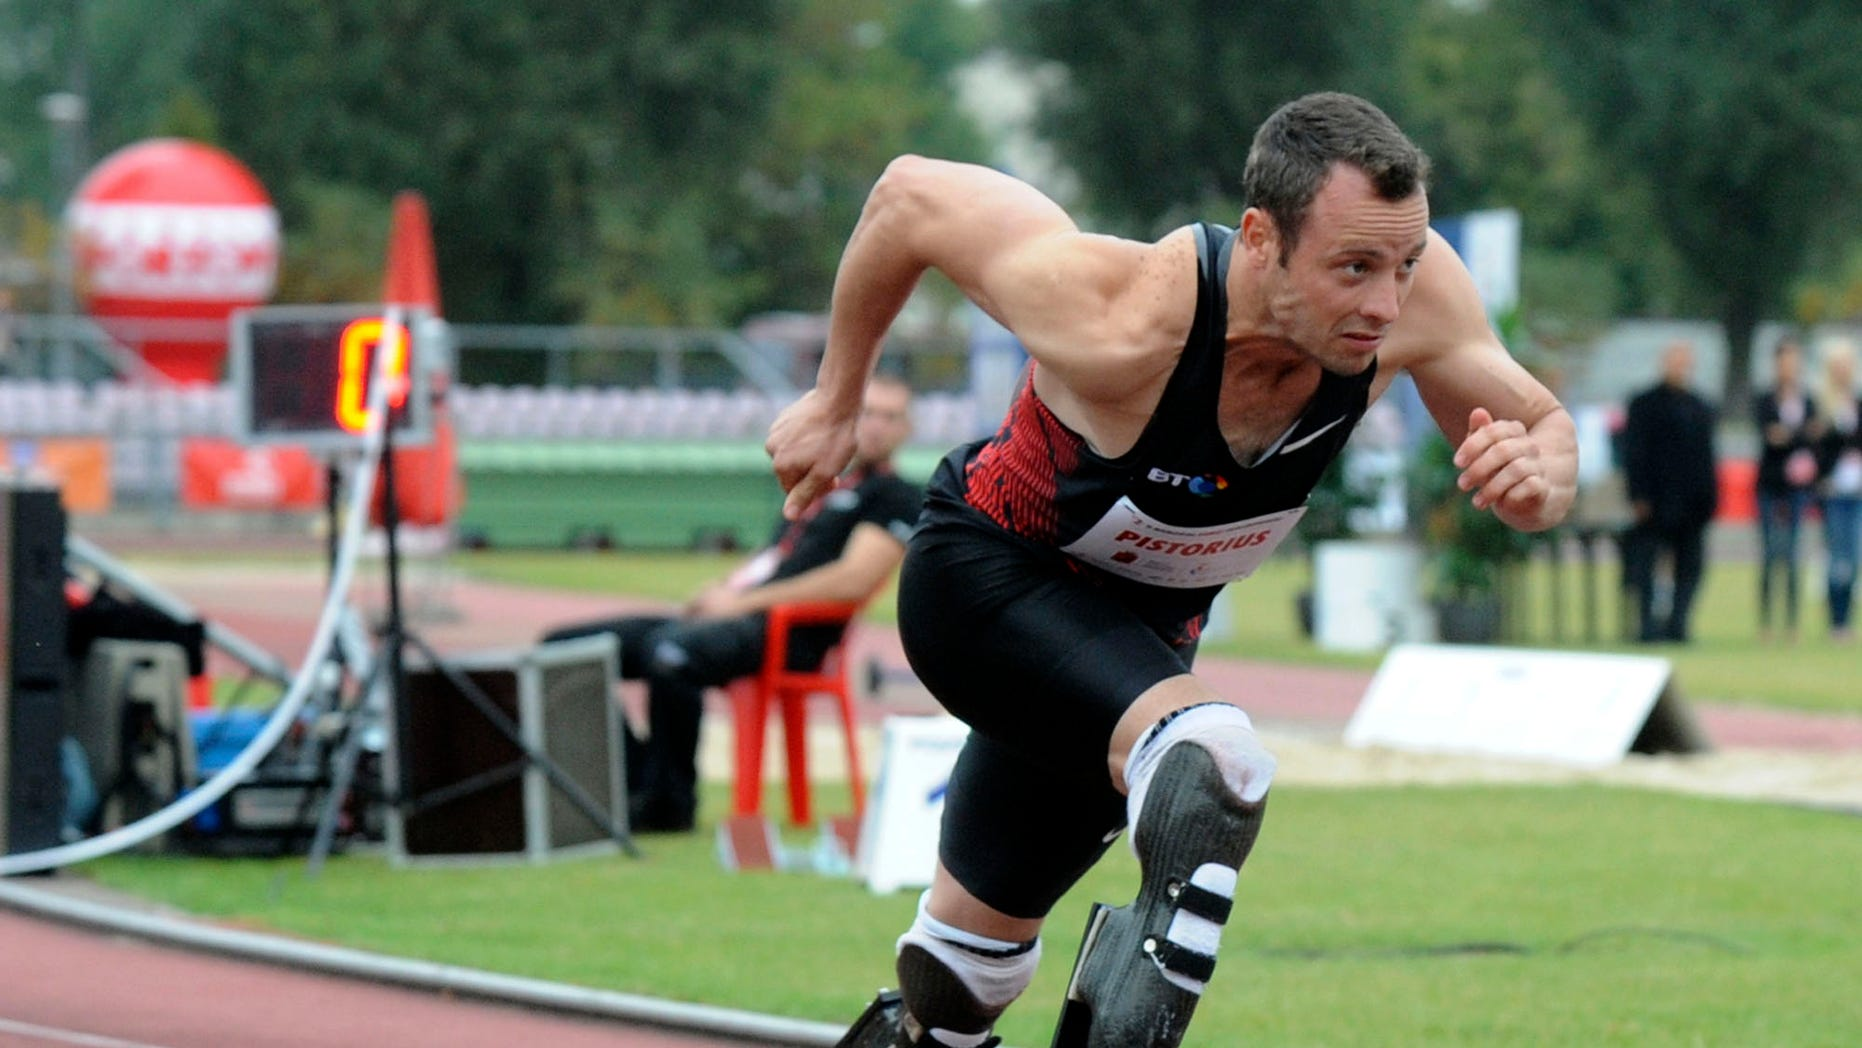 Sept. 20, 2011: In this file photo, South Africa's Oscar Pistorius runs in a 400 meter race in Warsaw, Poland.